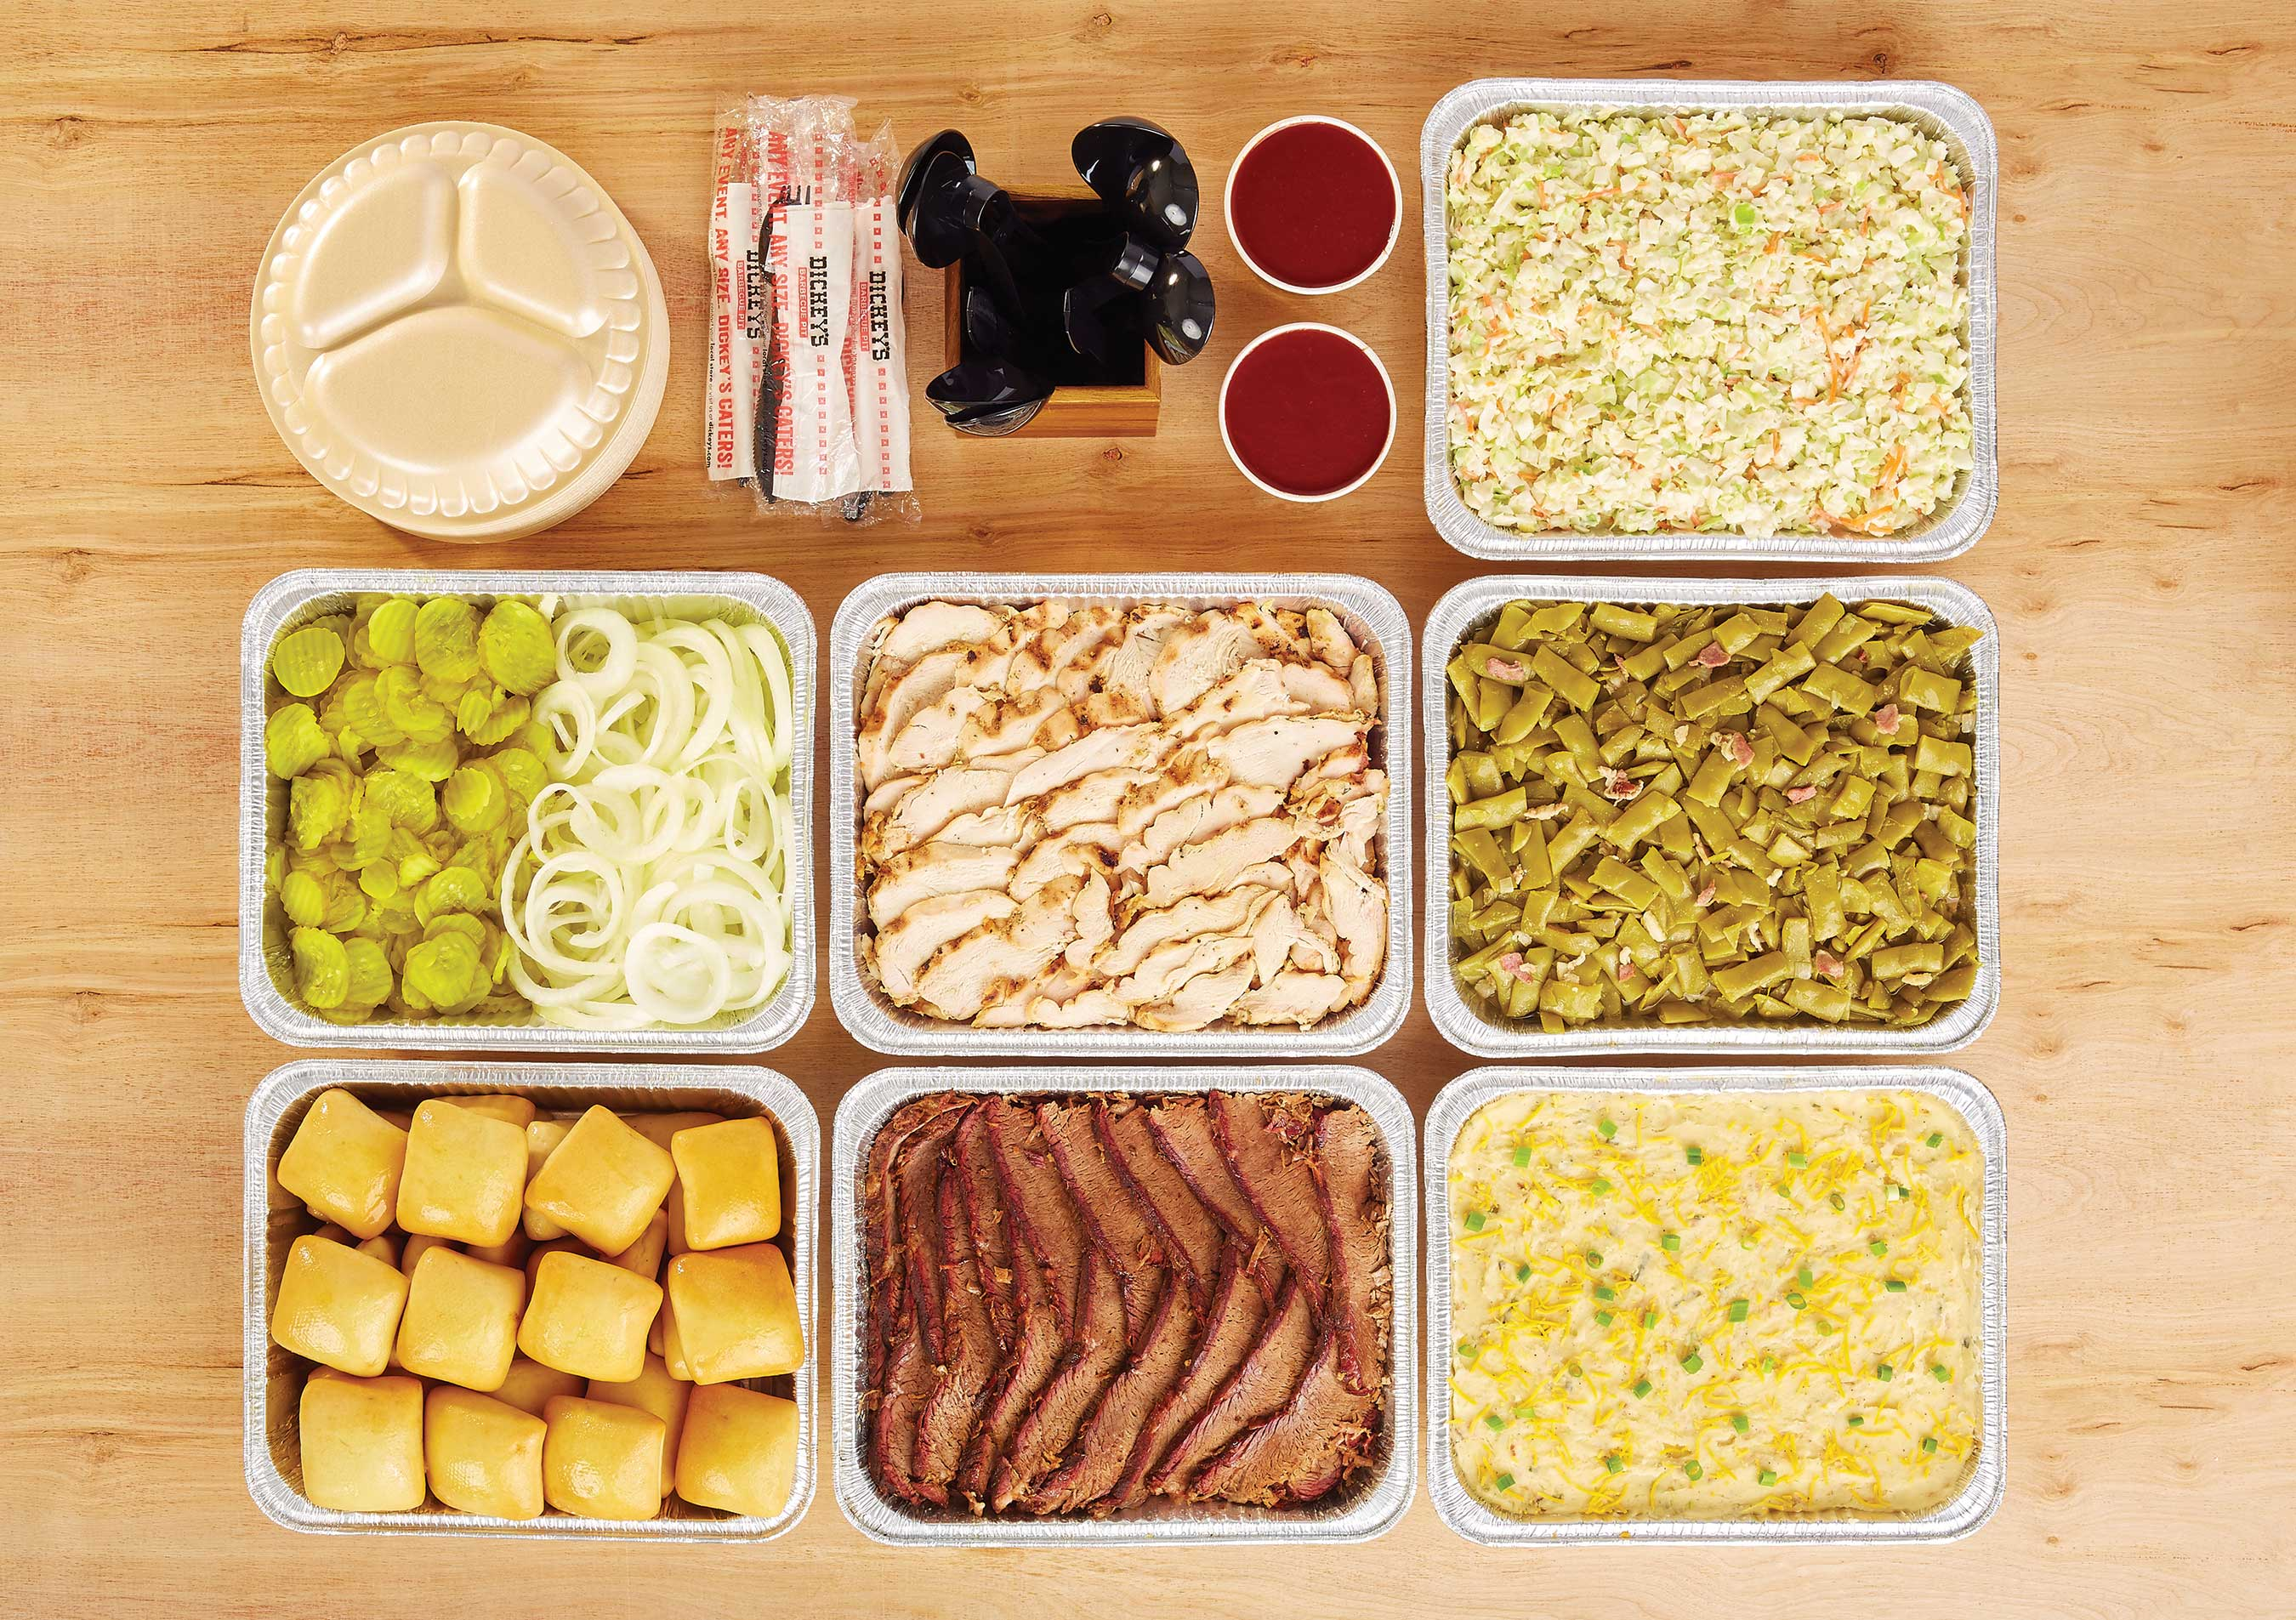 Dickey's Thanksgiving feast includes traditional stuffing, gravy, baked potato casserole, green beans with bacon and our signature buttery rolls.